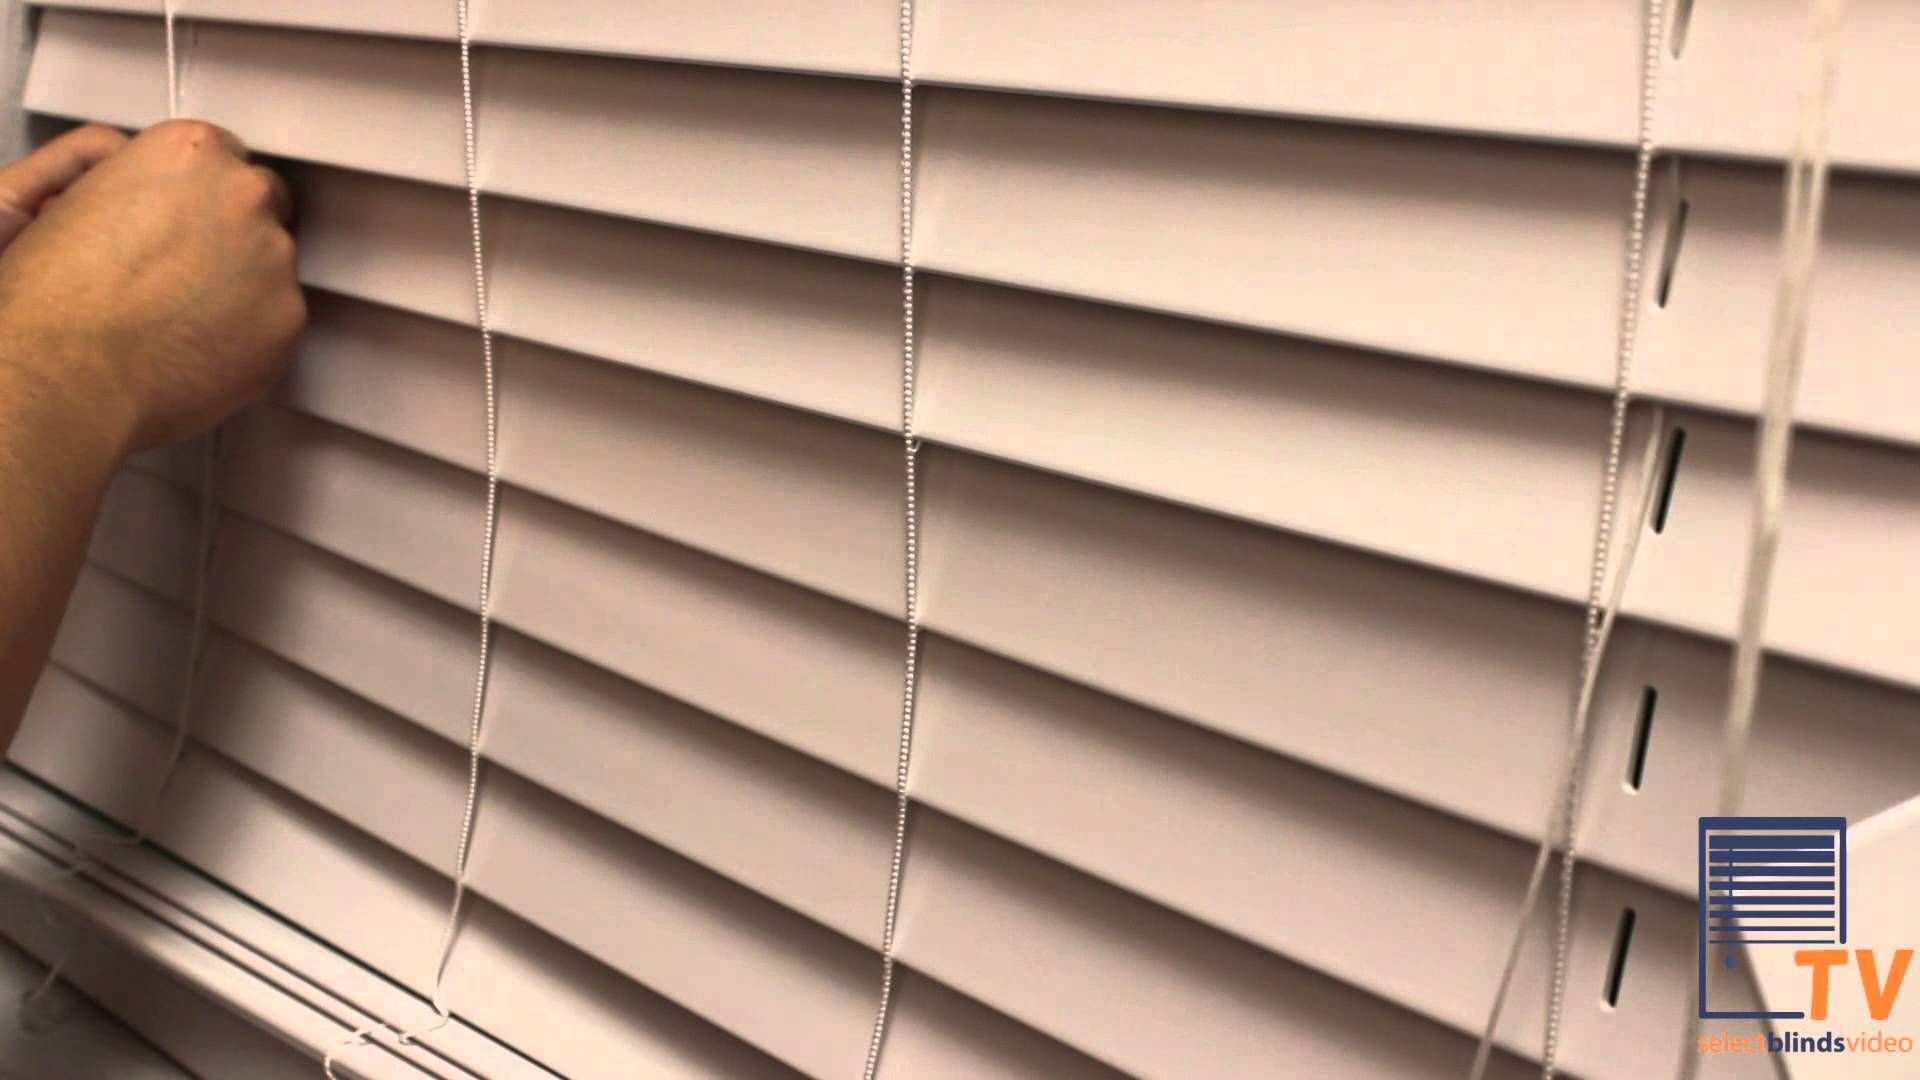 How to change the slats on your window blinds from